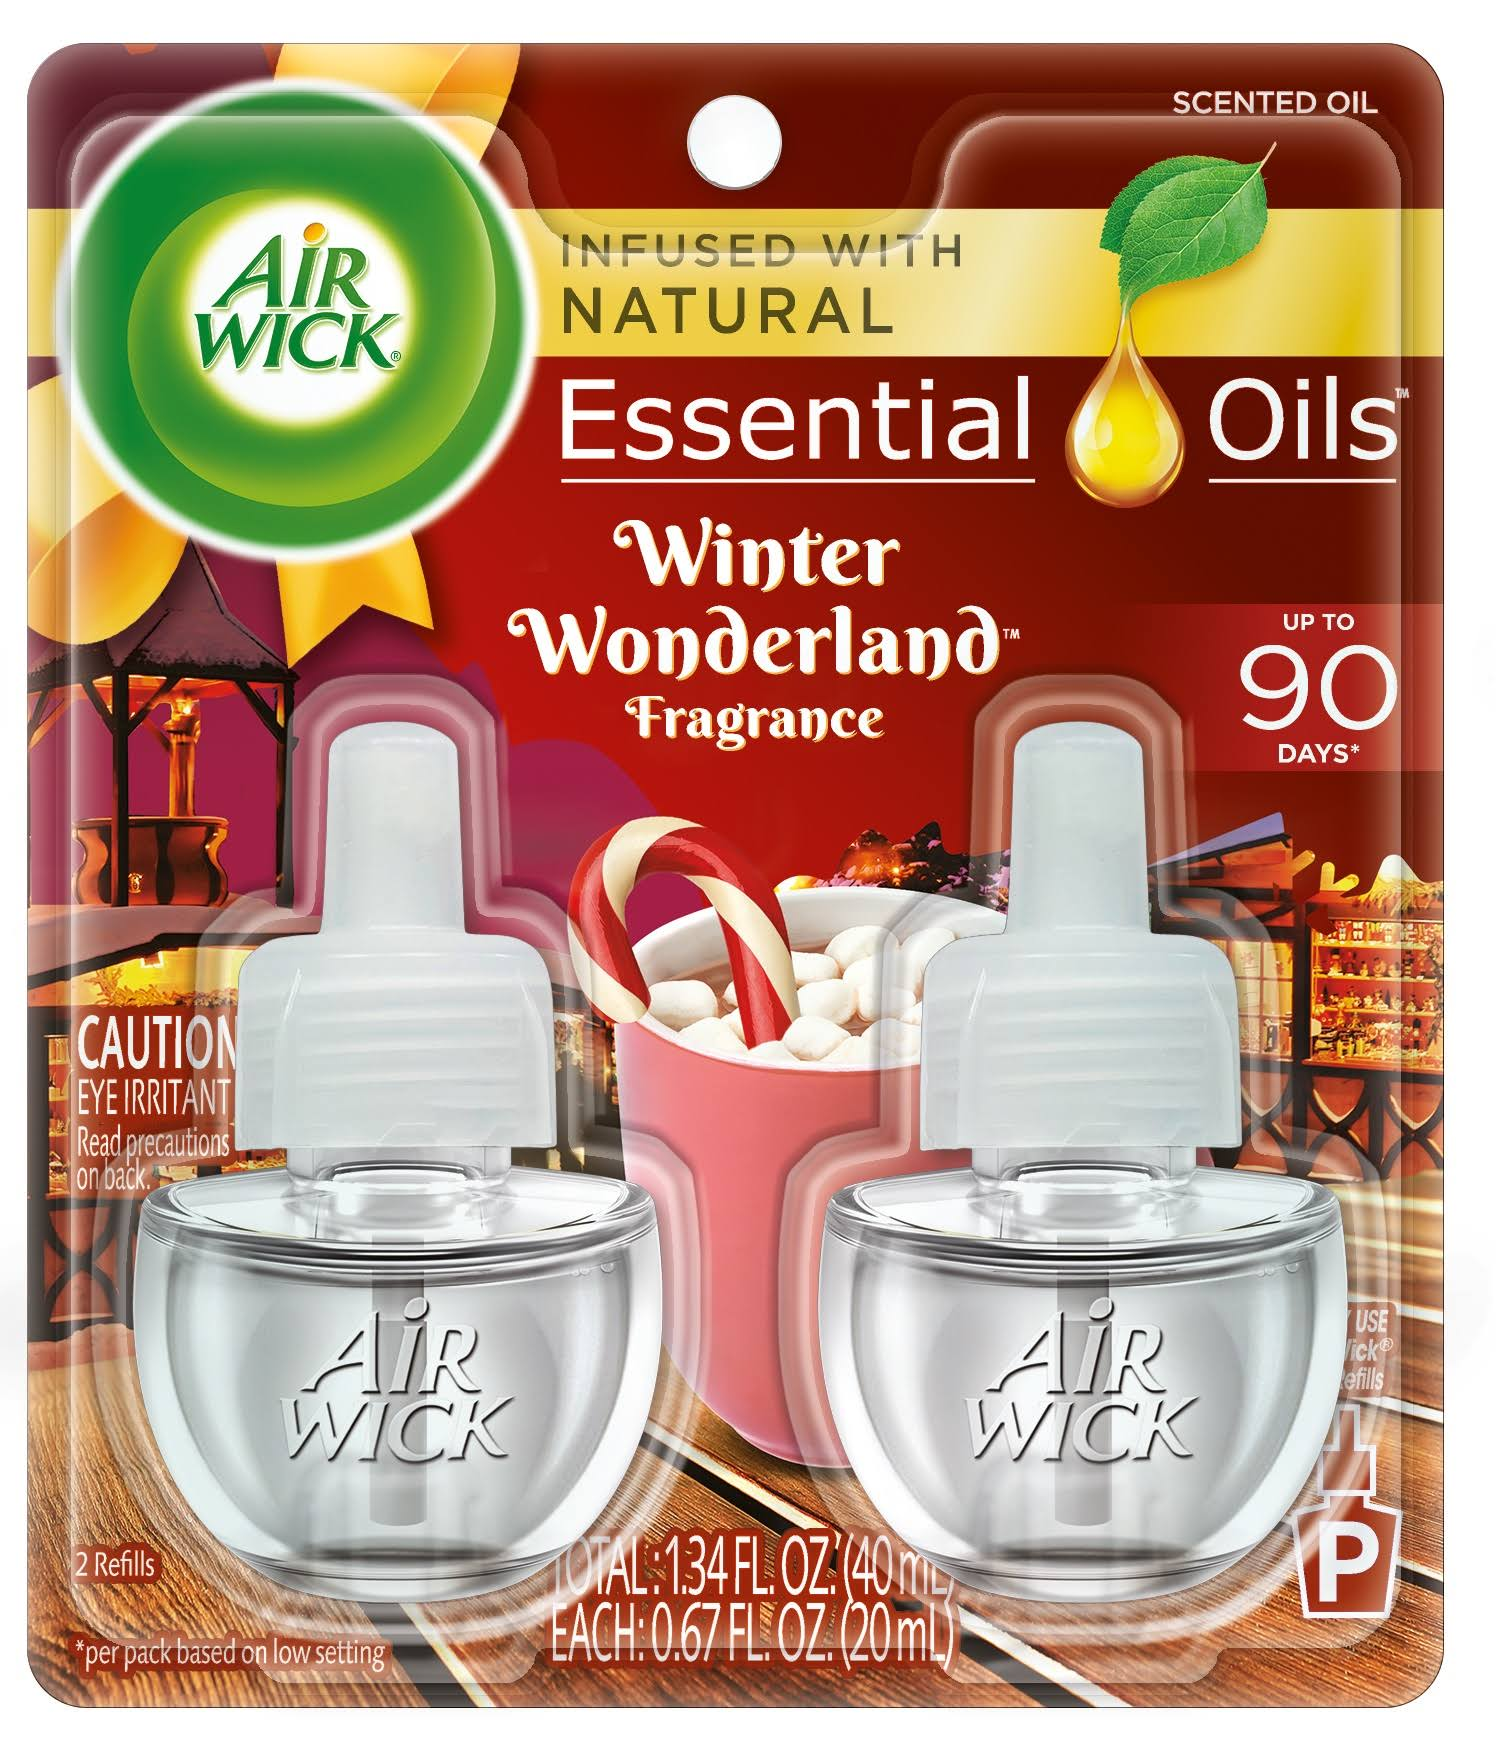 Air Wick Scented Oil 2 Refills, Winter Wonderland, Air Freshener, 0.67 Ounce, 2 Count